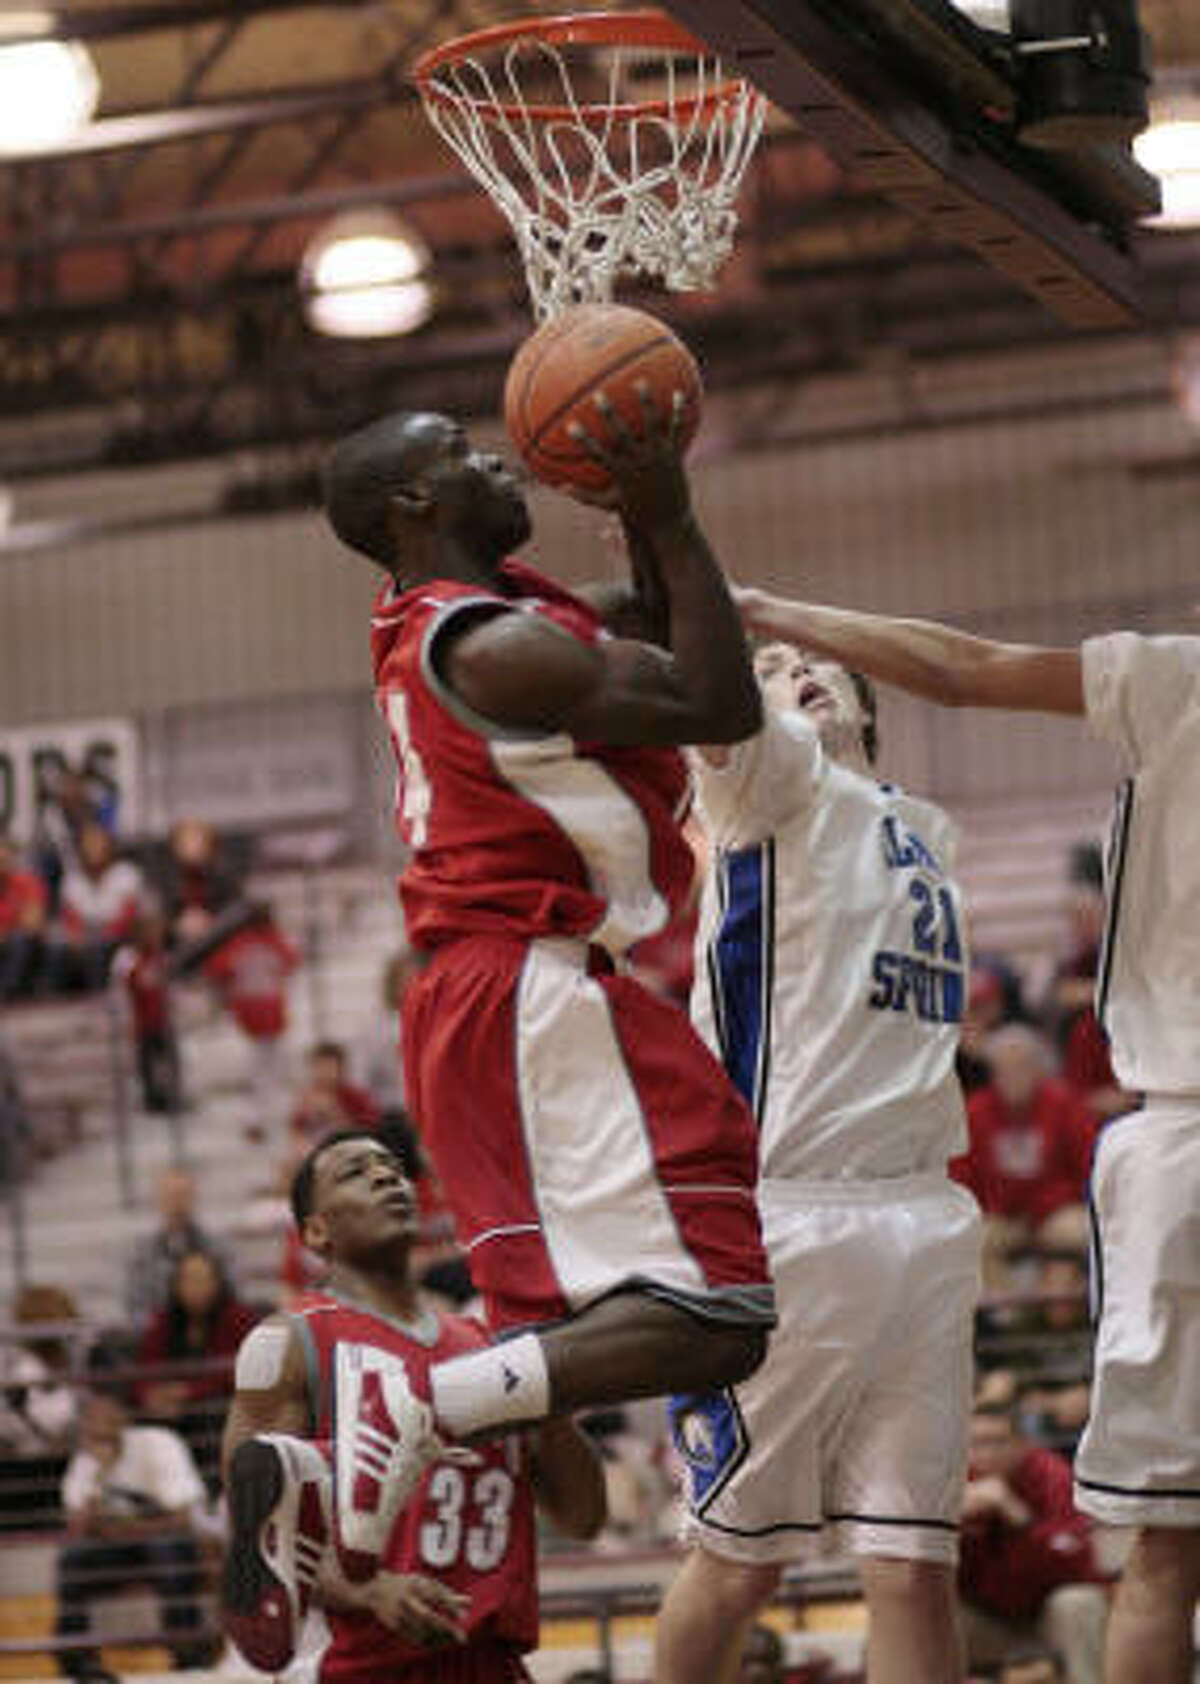 Travis guard Ray Penn drives for a layup as Clear Springs' Anthony Horton attempts to block the shot.